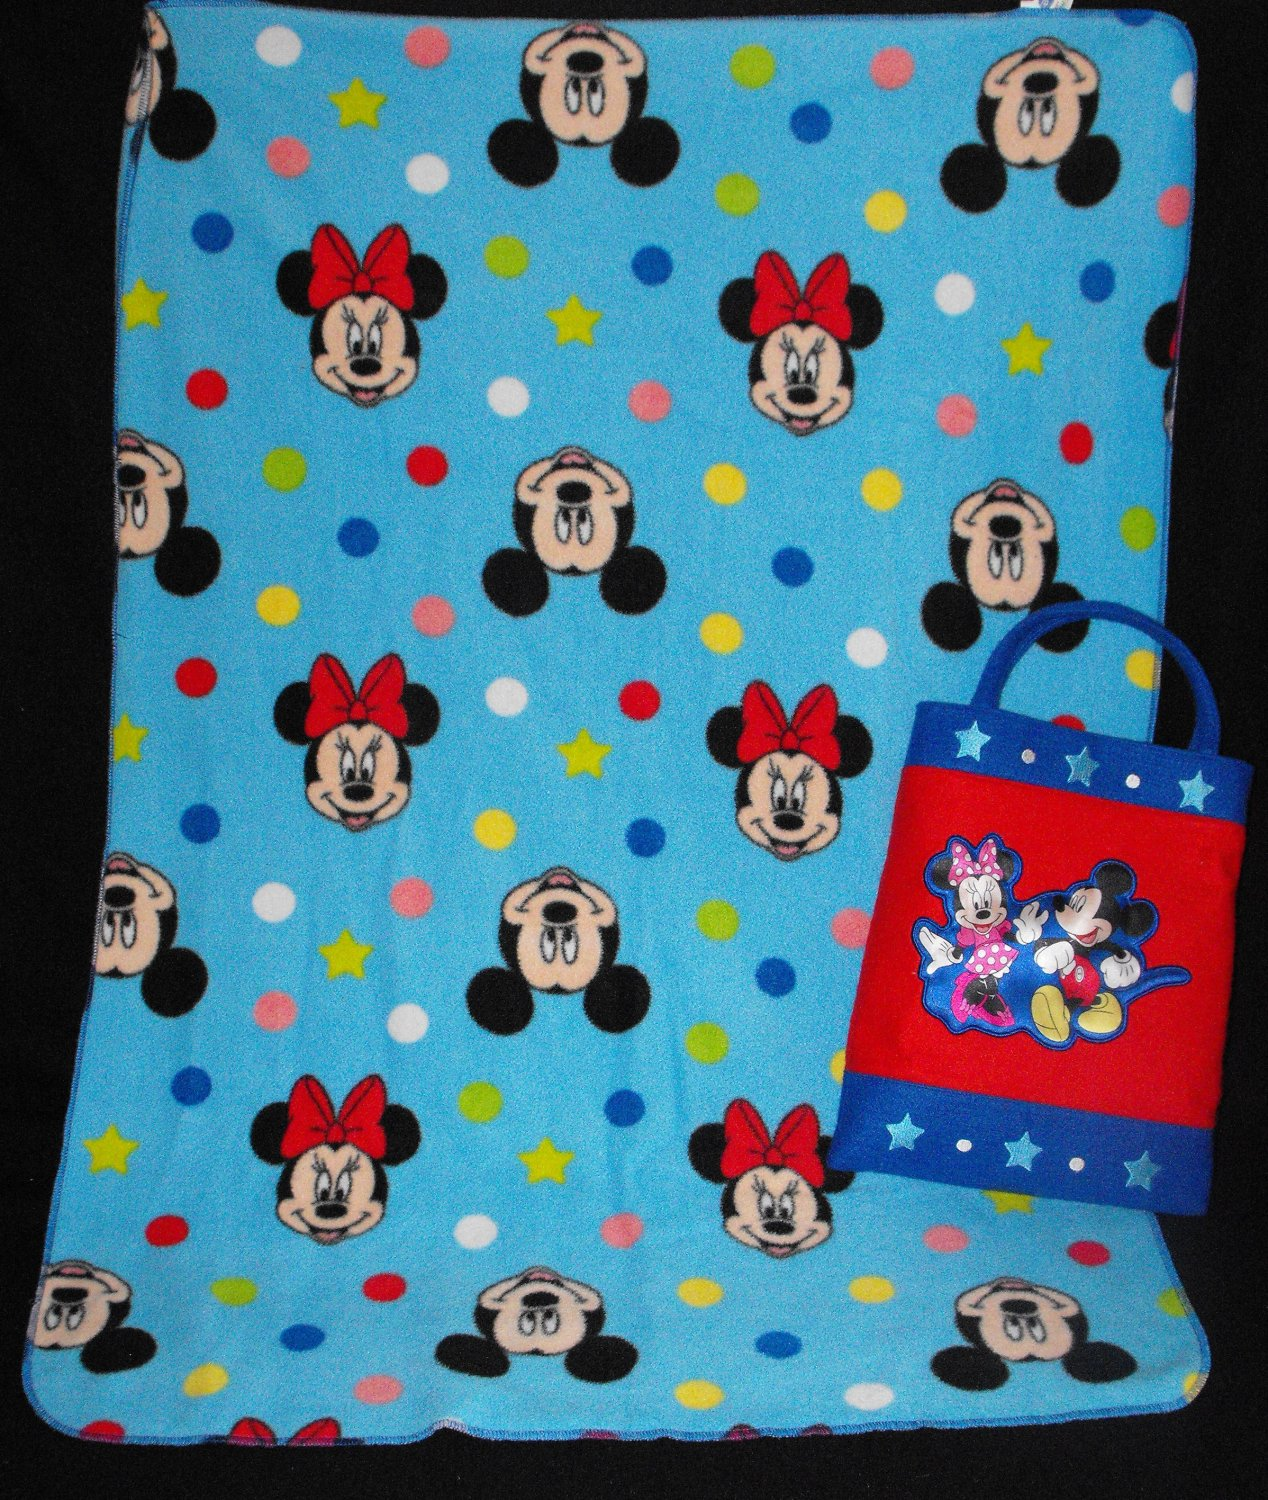 *SOLD~Awaiting Feedback~Mickey Mouse Clubhouse Avon Toddler/Receiving Blanket w/ tote